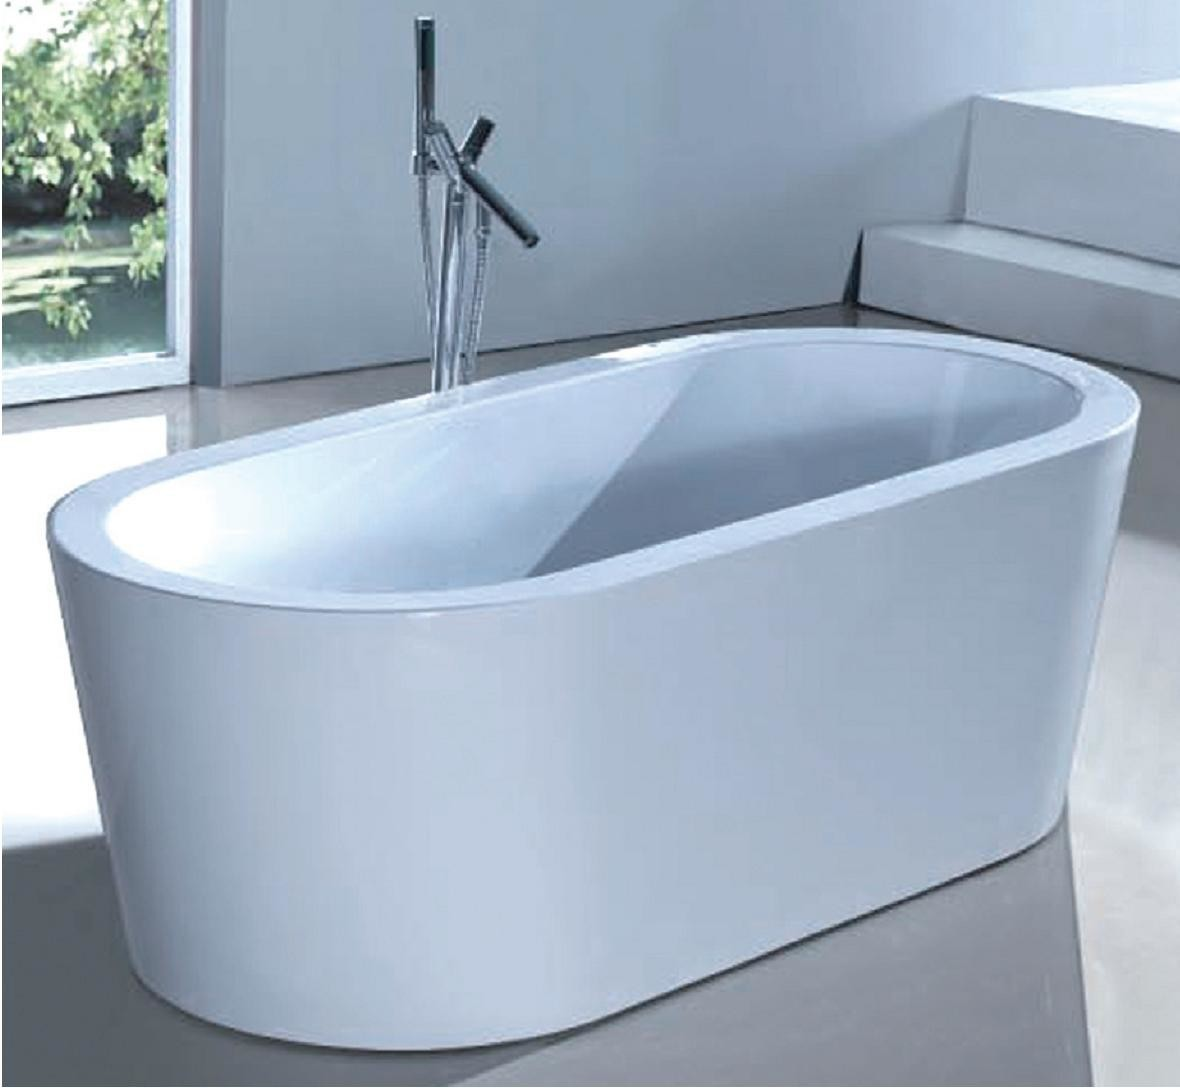 Exciting Bath Tub Photos - Exterior ideas 3D - gaml.us - gaml.us